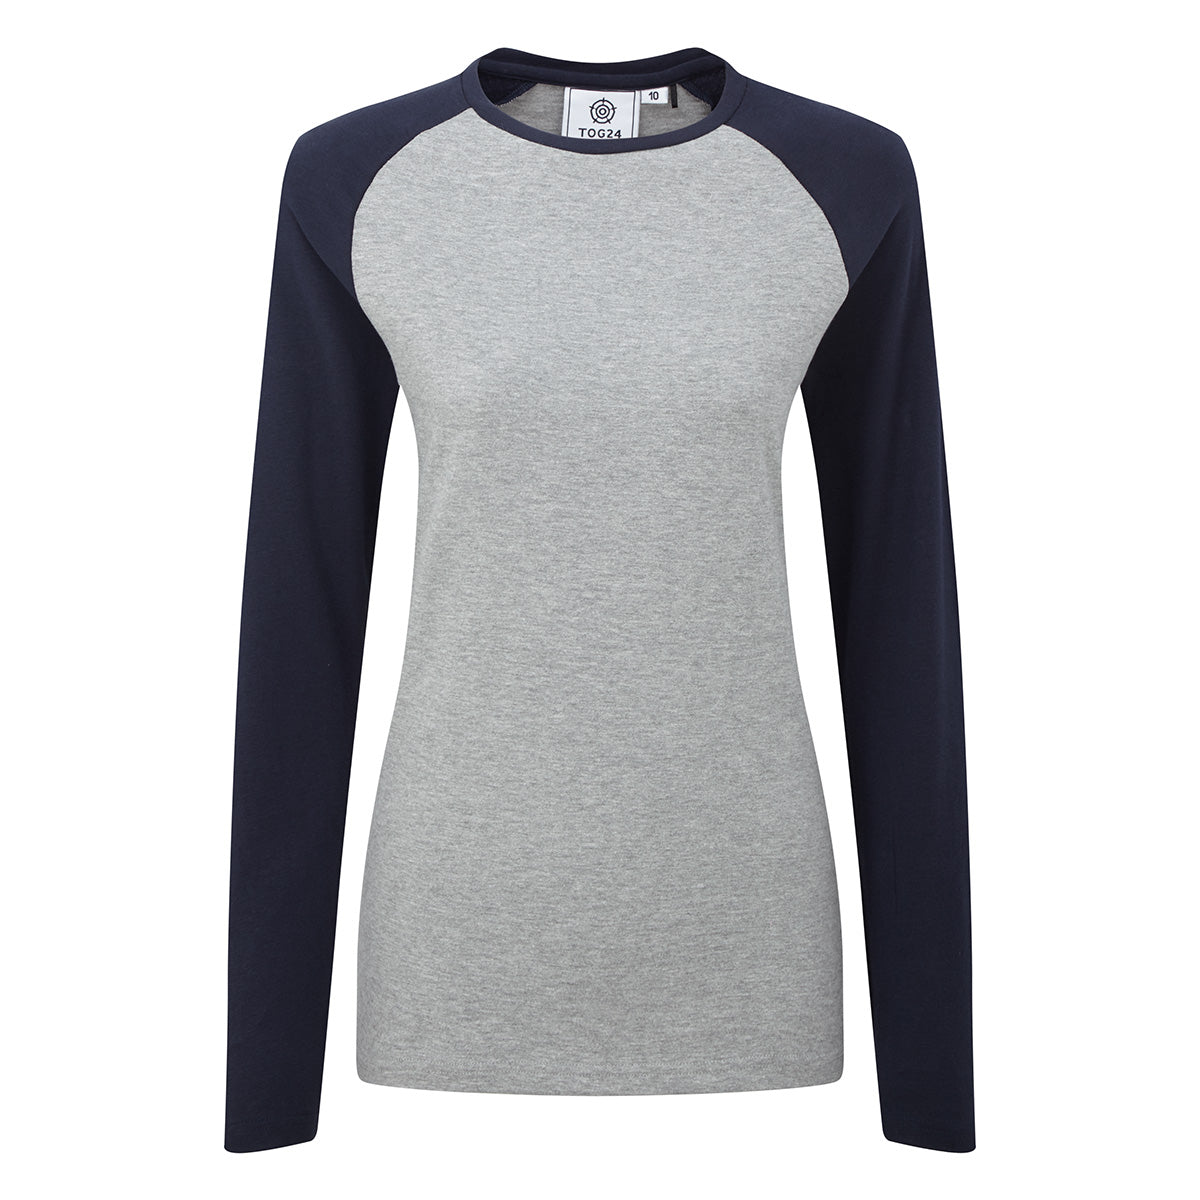 Kilwick Womens Long Sleeve Raglan T-Shirt - Grey/Navy image 4